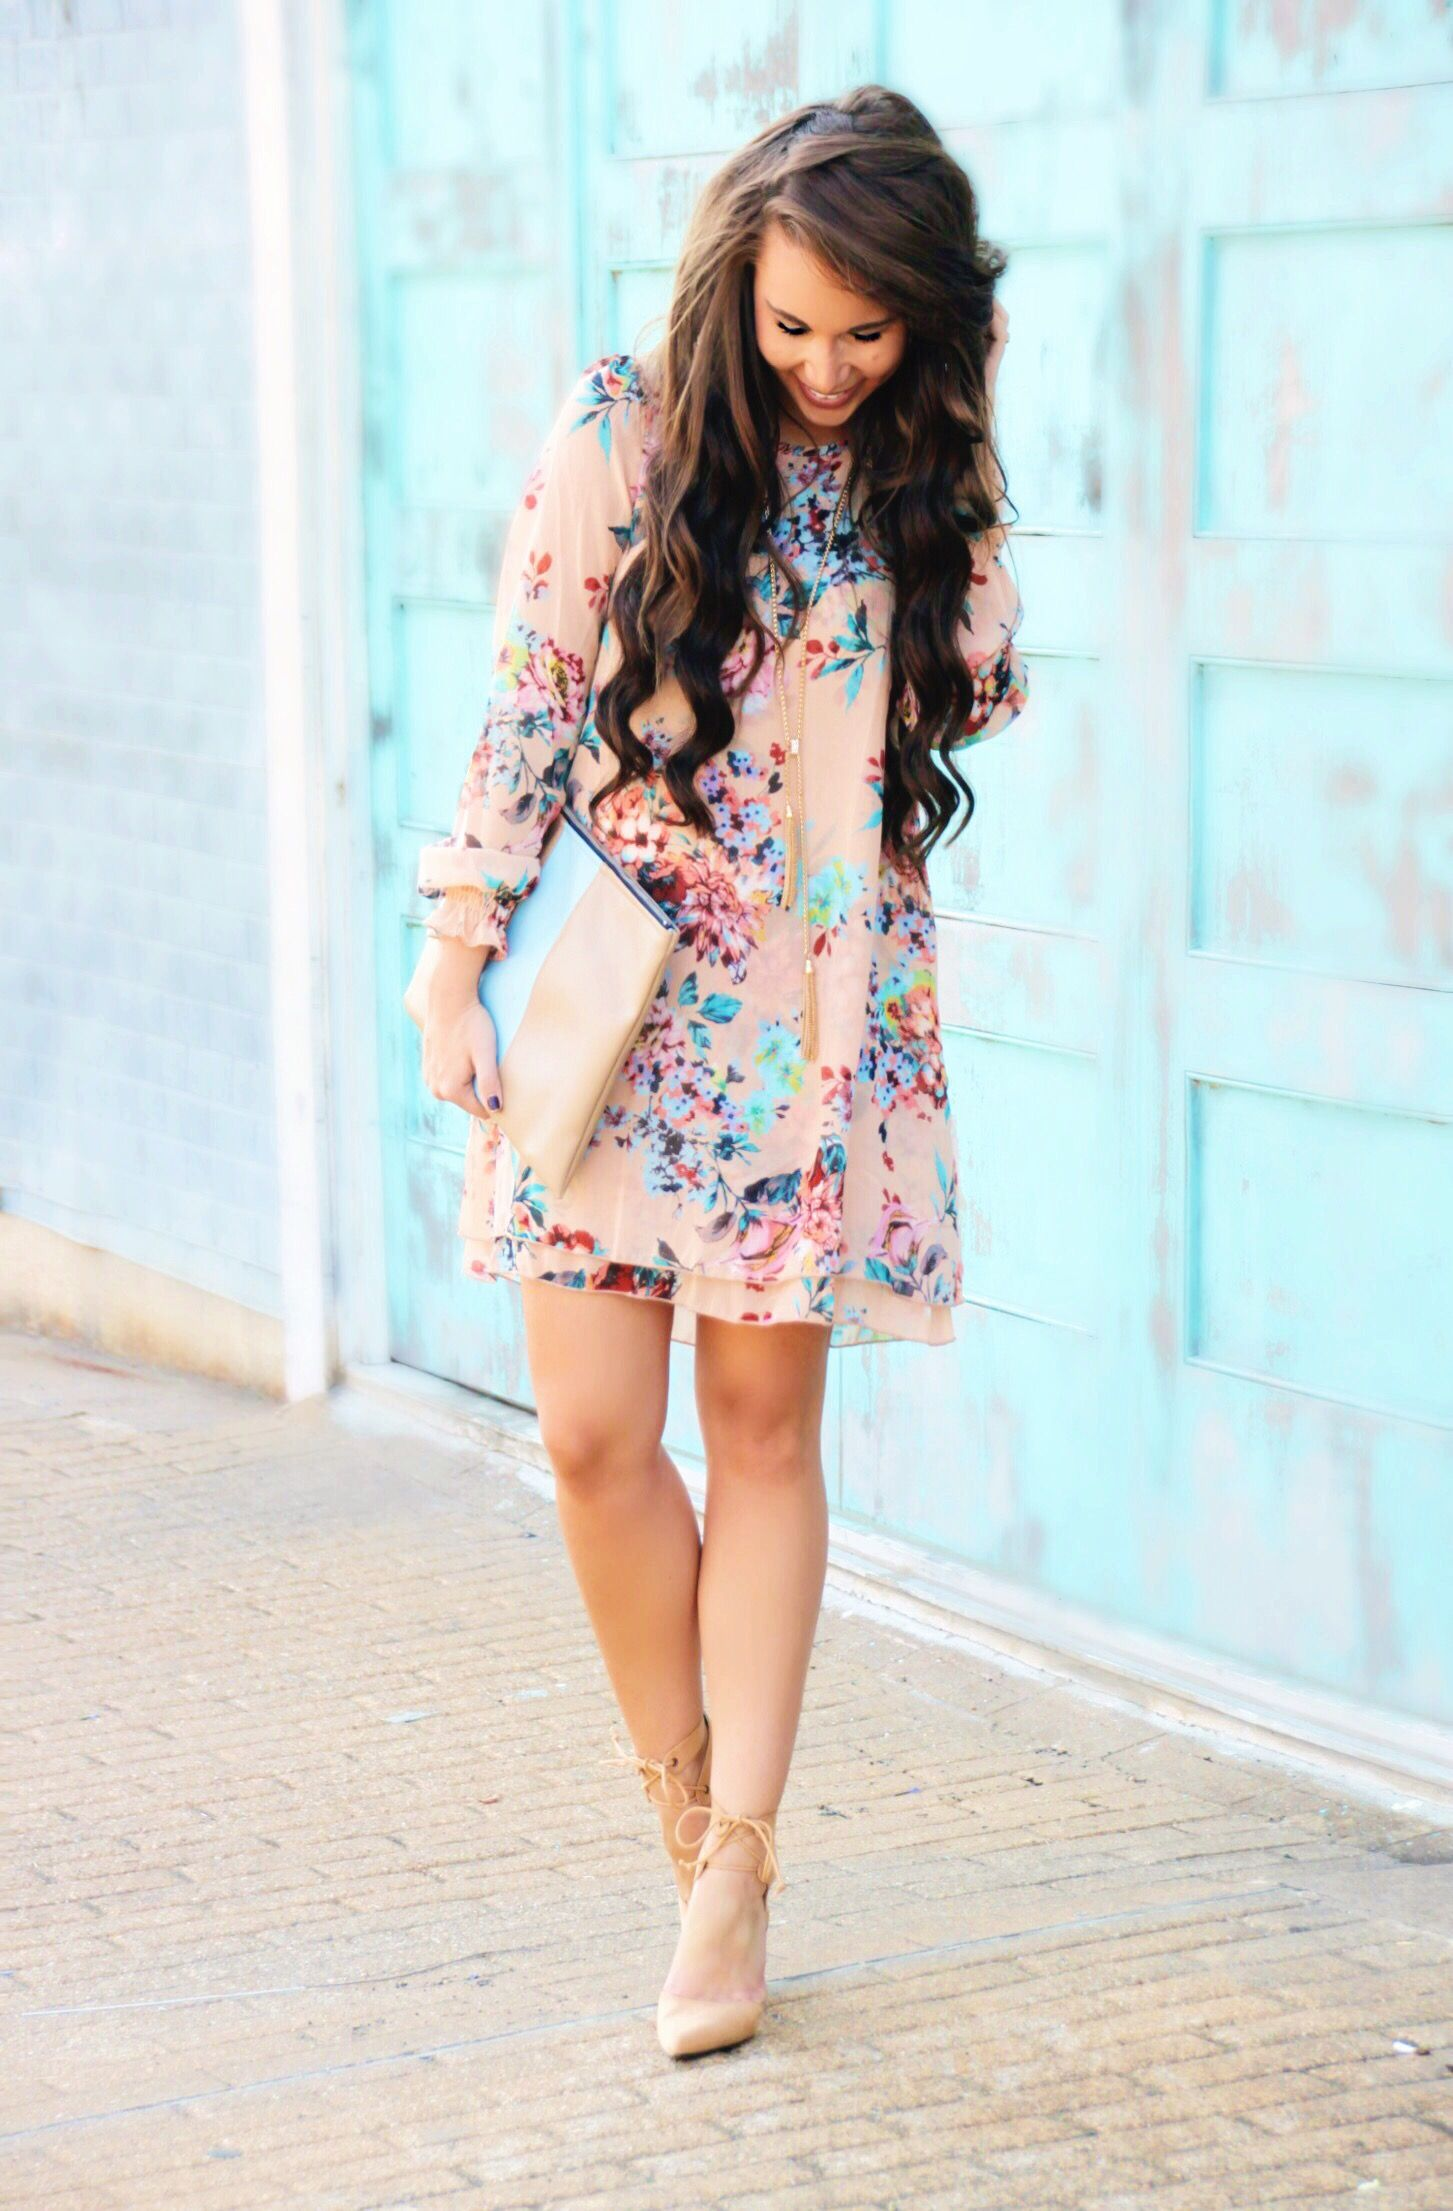 i like the colors of this dress and floral pattern for